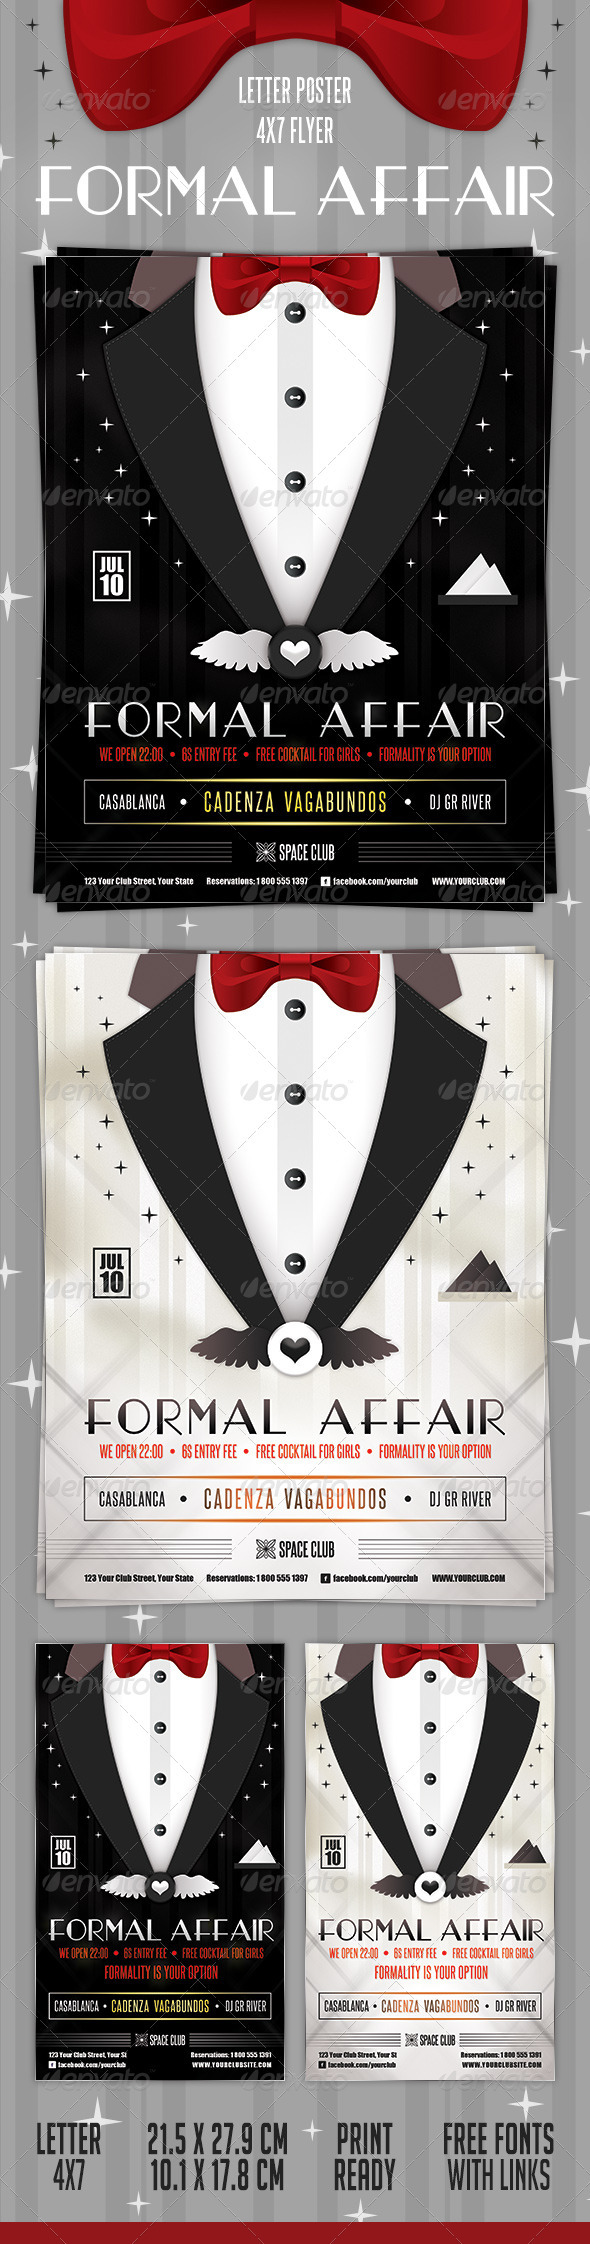 GraphicRiver Formal Affair Poster and Flyer 2598528